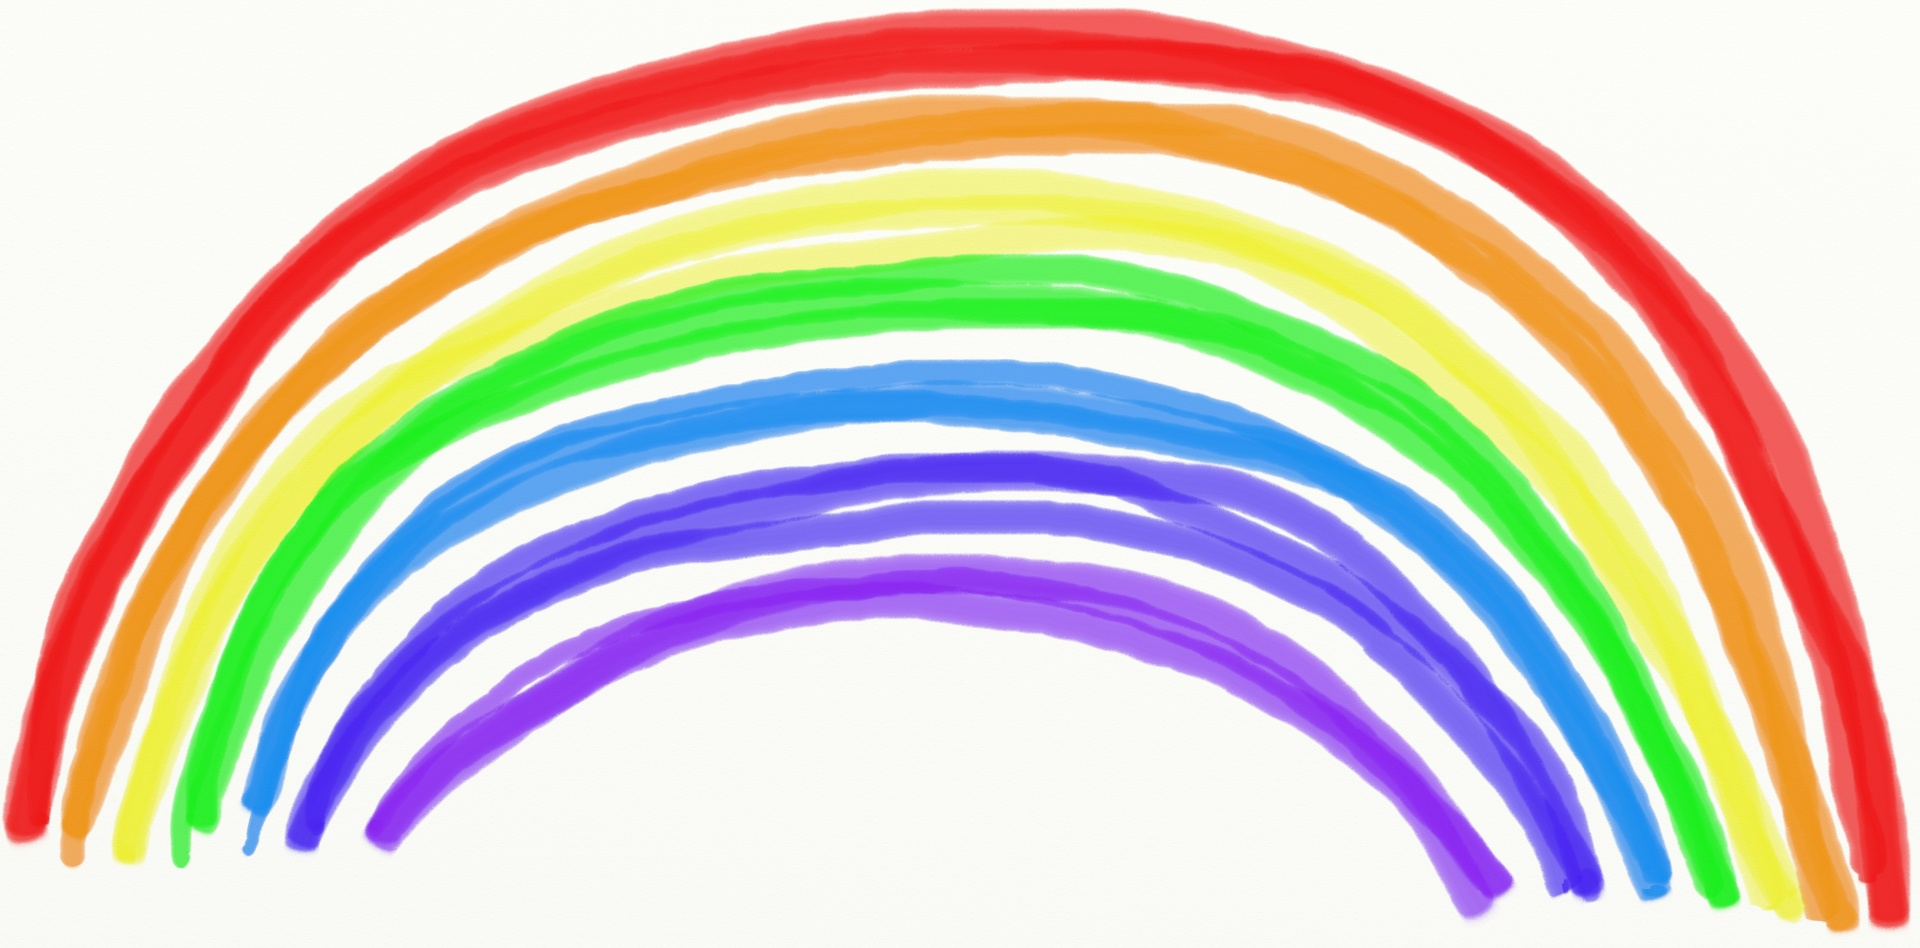 rainbow images free free download best rainbow images